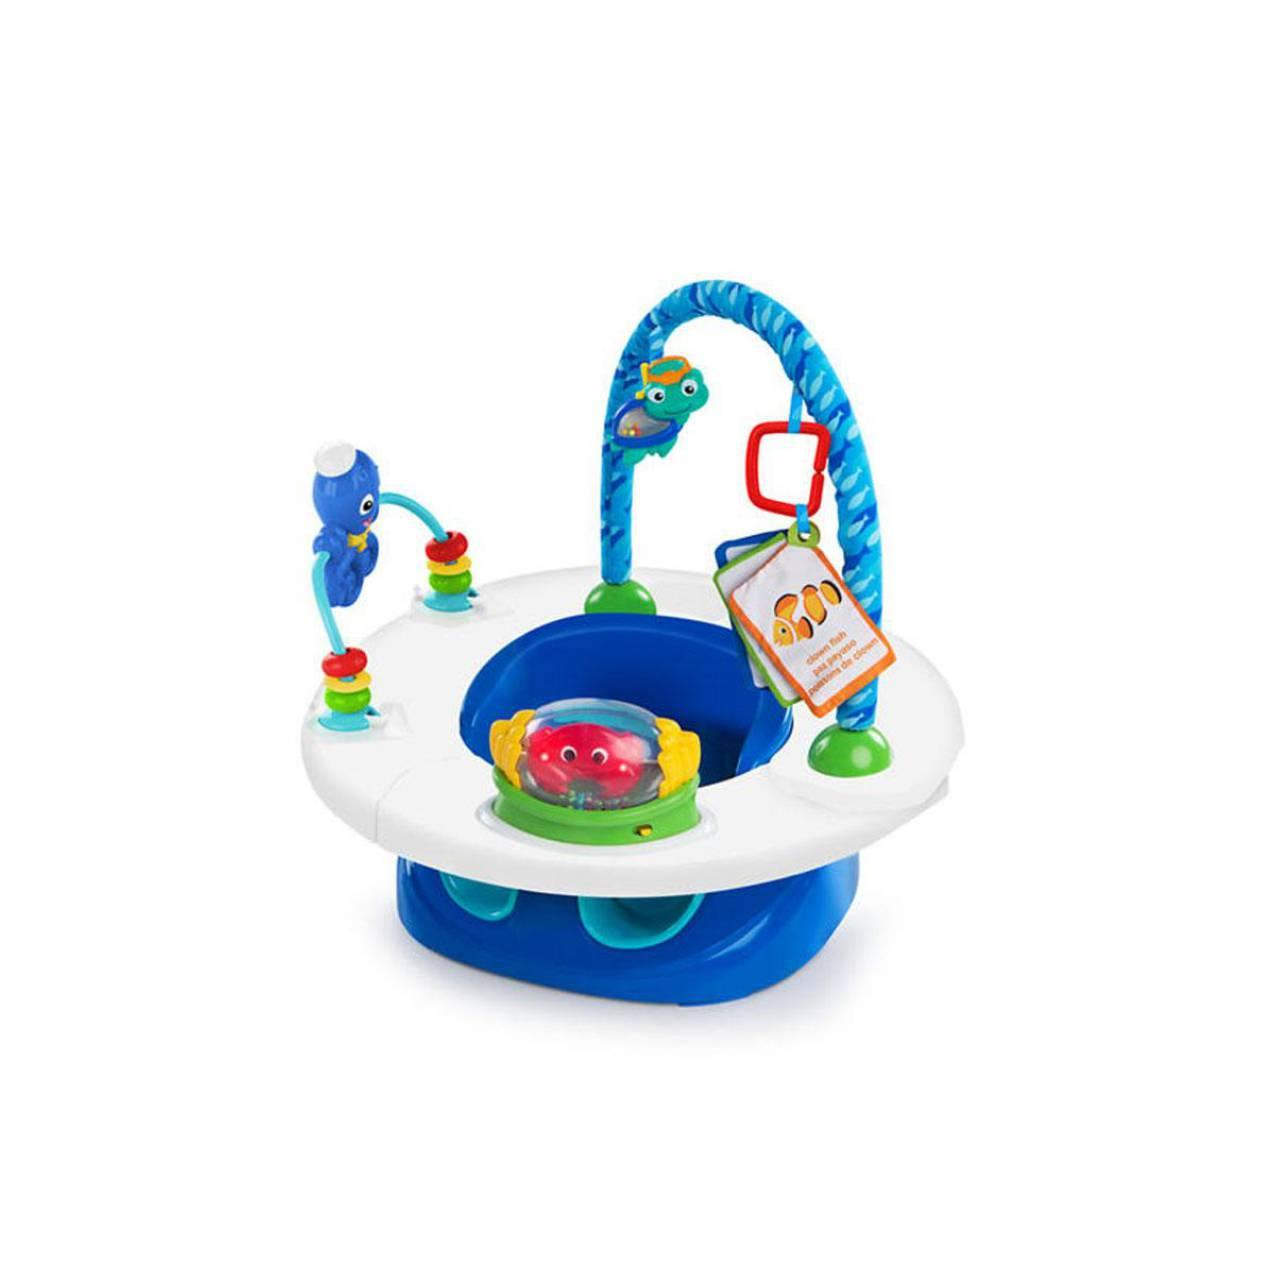 Baby Einstein 3-in-1 Snack & Play Discovery Seat 10921